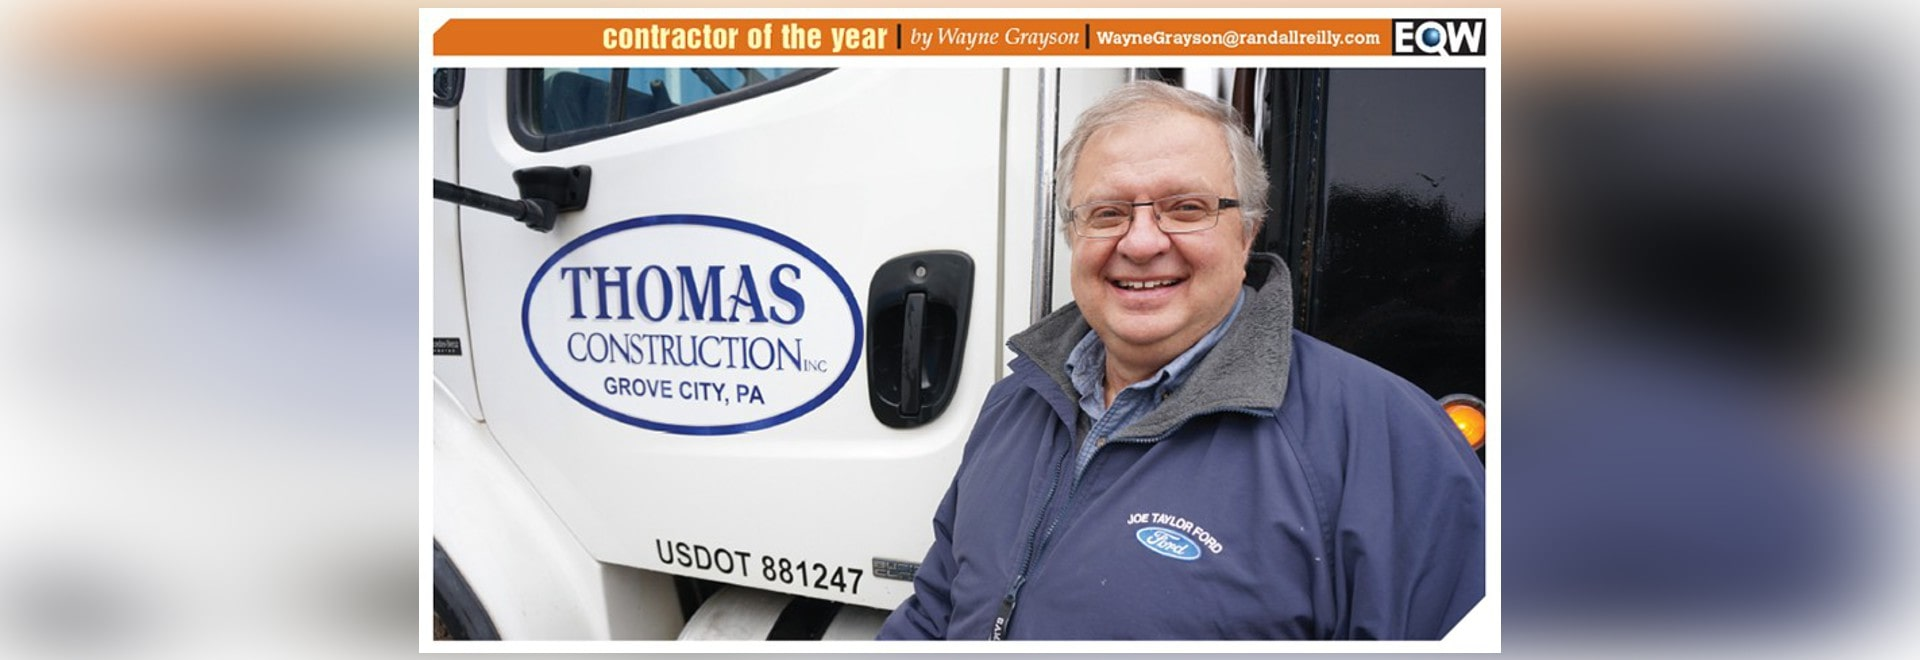 Mentoring spirit enables Pennsylvania contractor Doug Thomas to build a people-first company